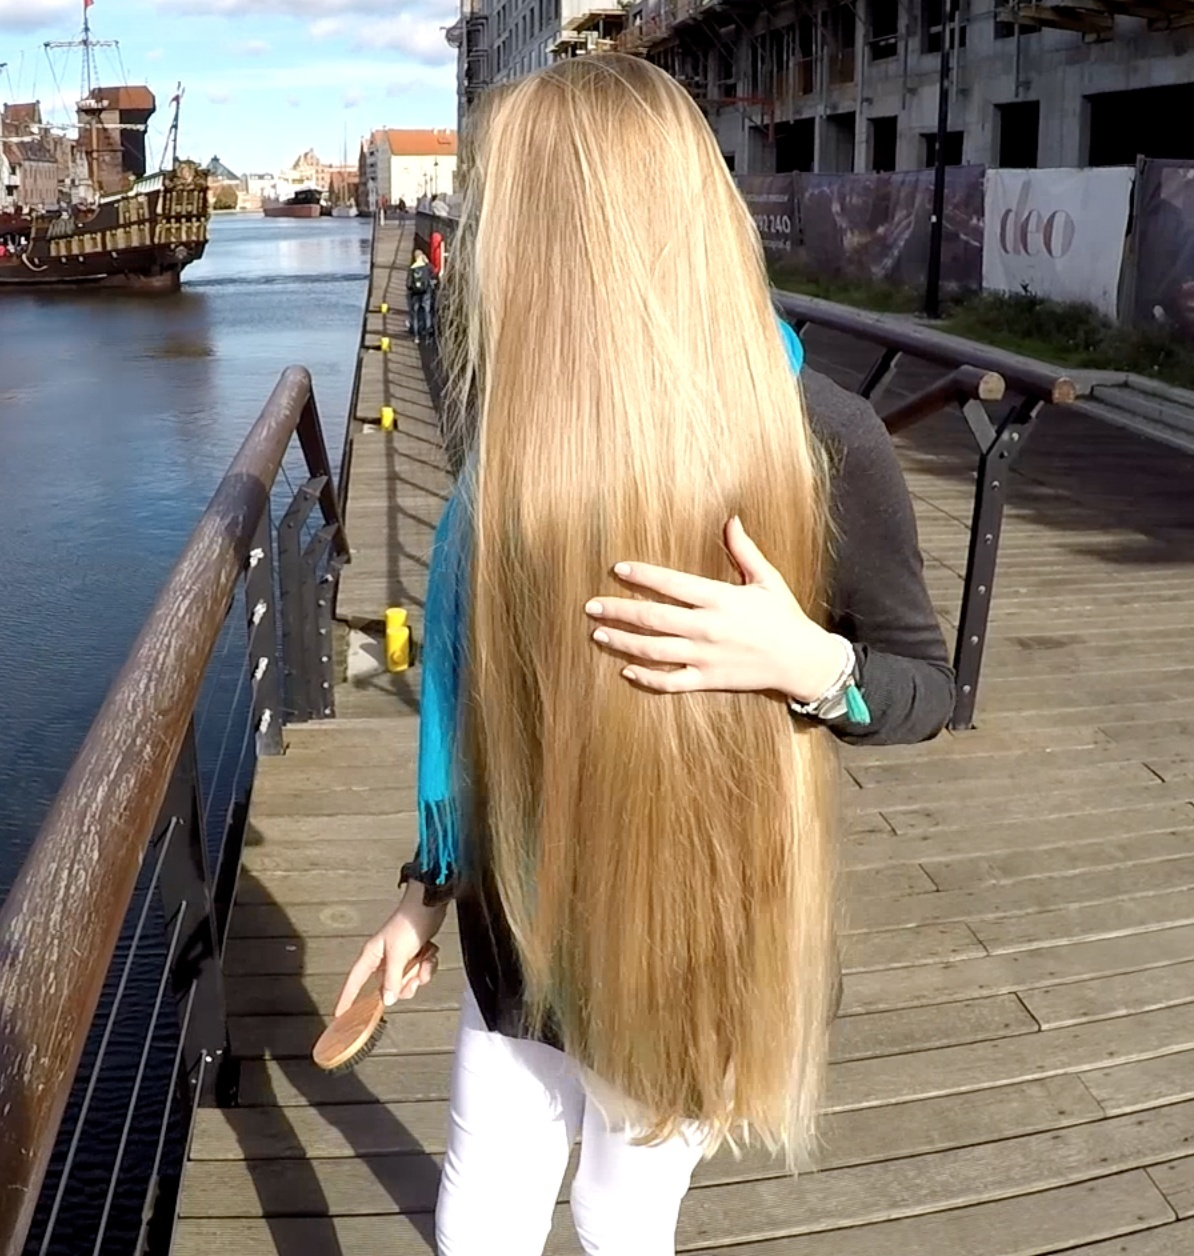 VIDEO - Jessica by the canal